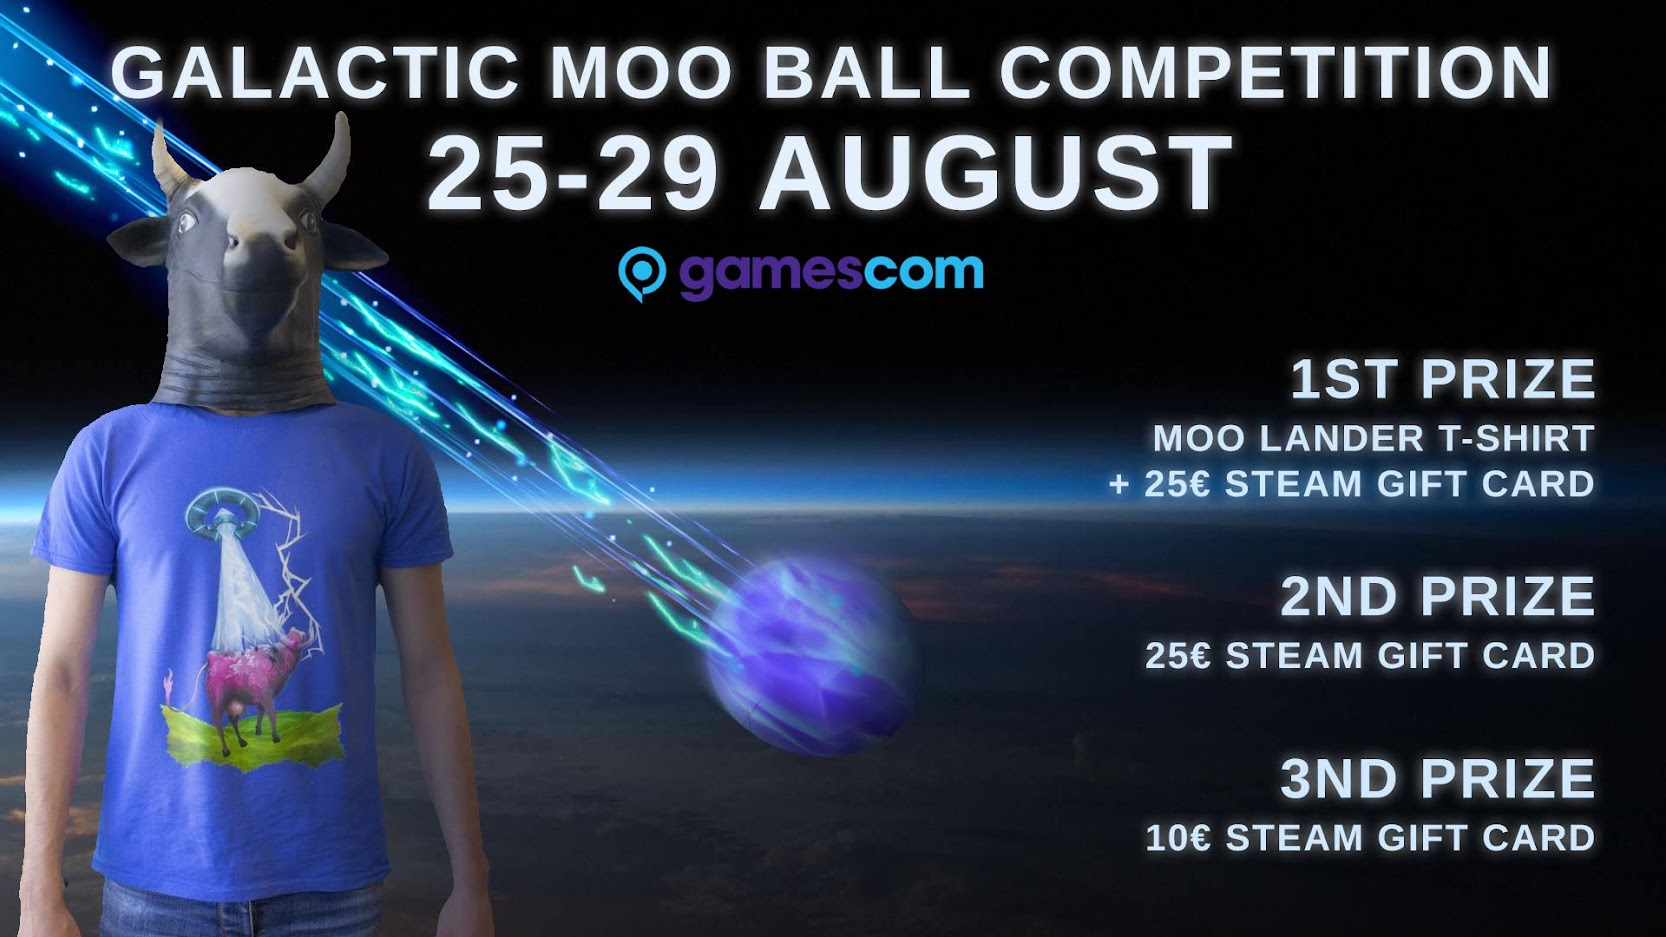 Mootiplayer is about to get competitive on Moo Lander